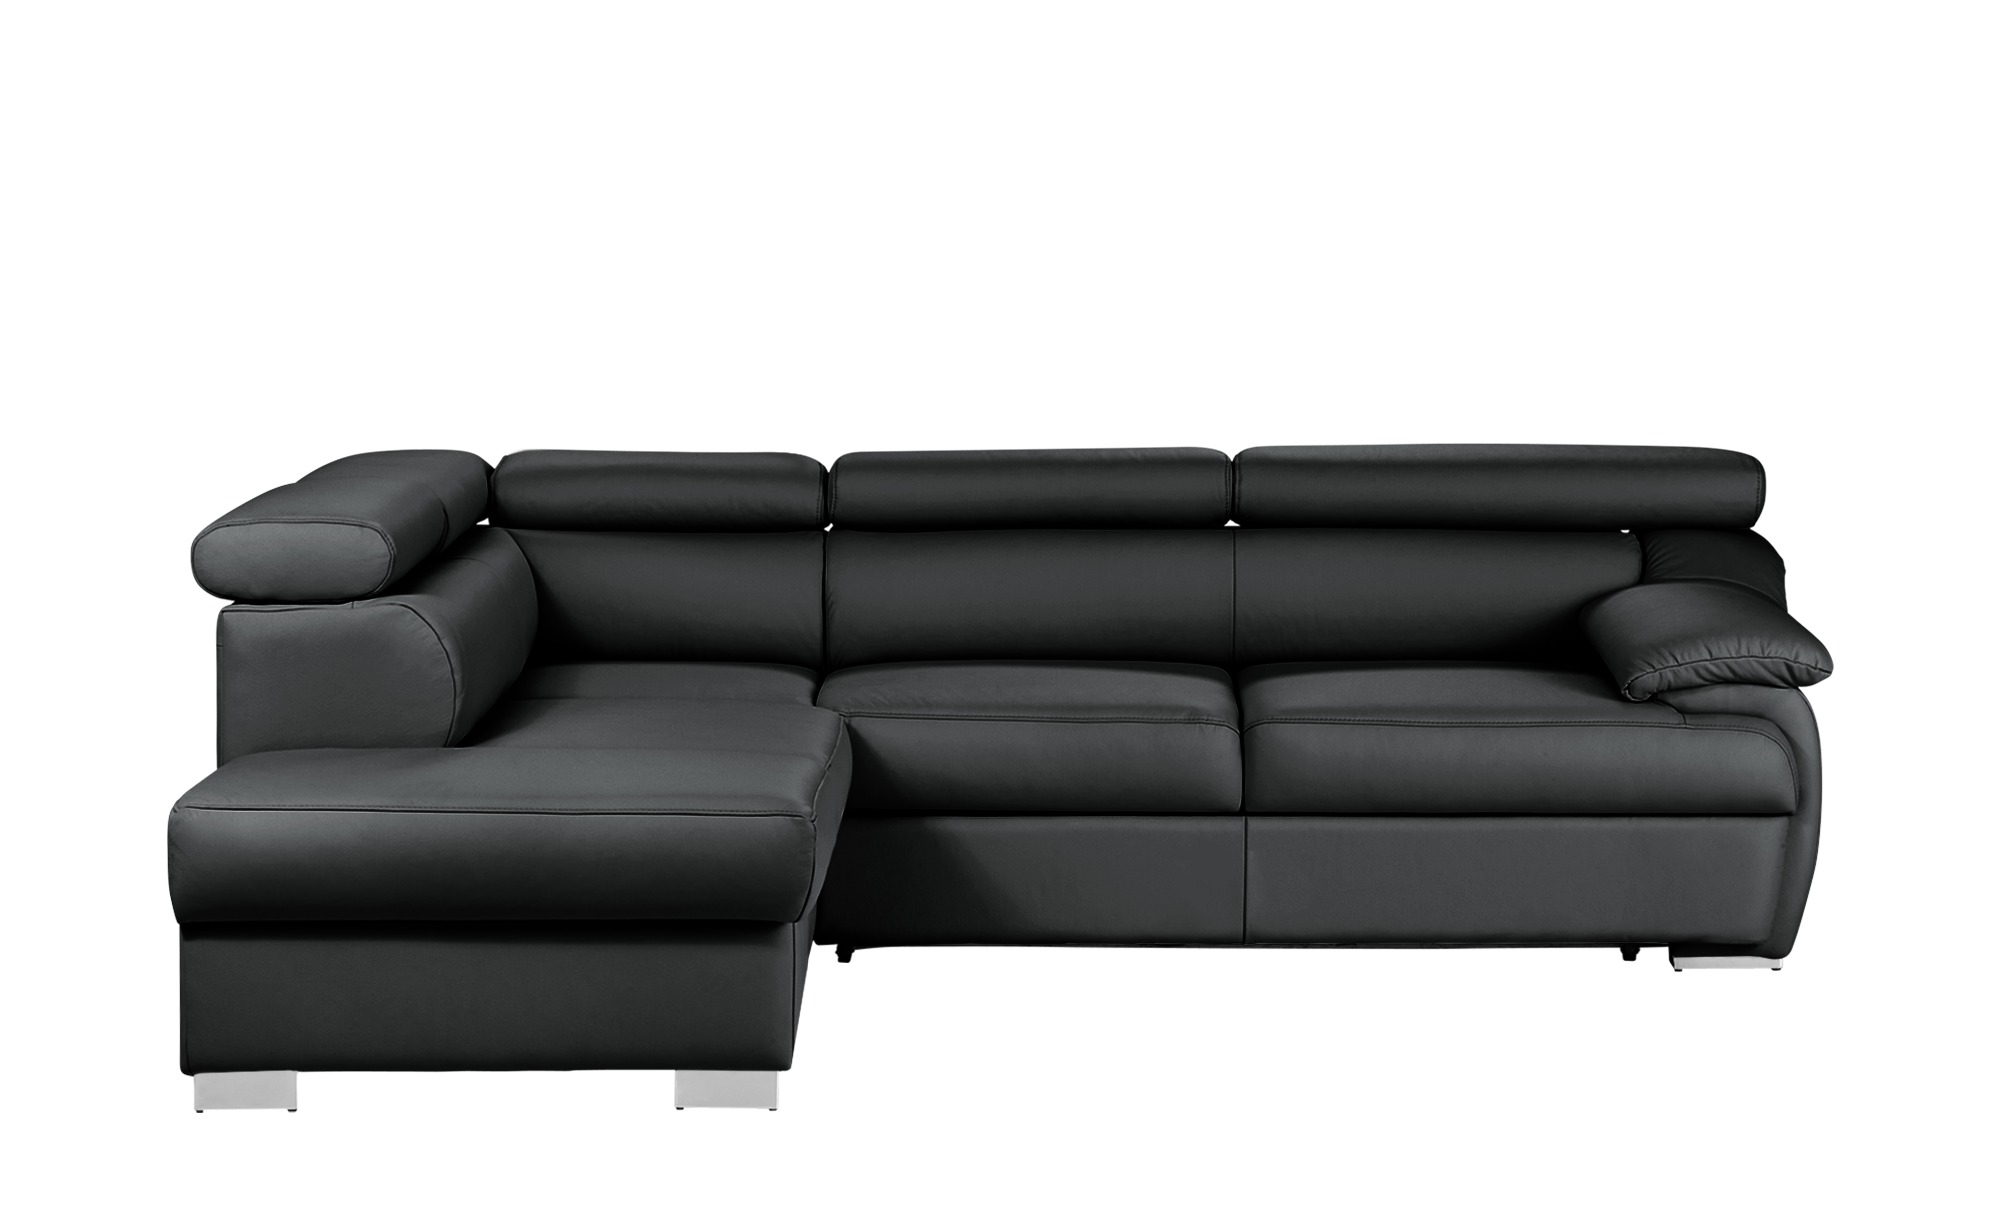 uno ecksofa bari breite h he schwarz online kaufen bei woonio. Black Bedroom Furniture Sets. Home Design Ideas